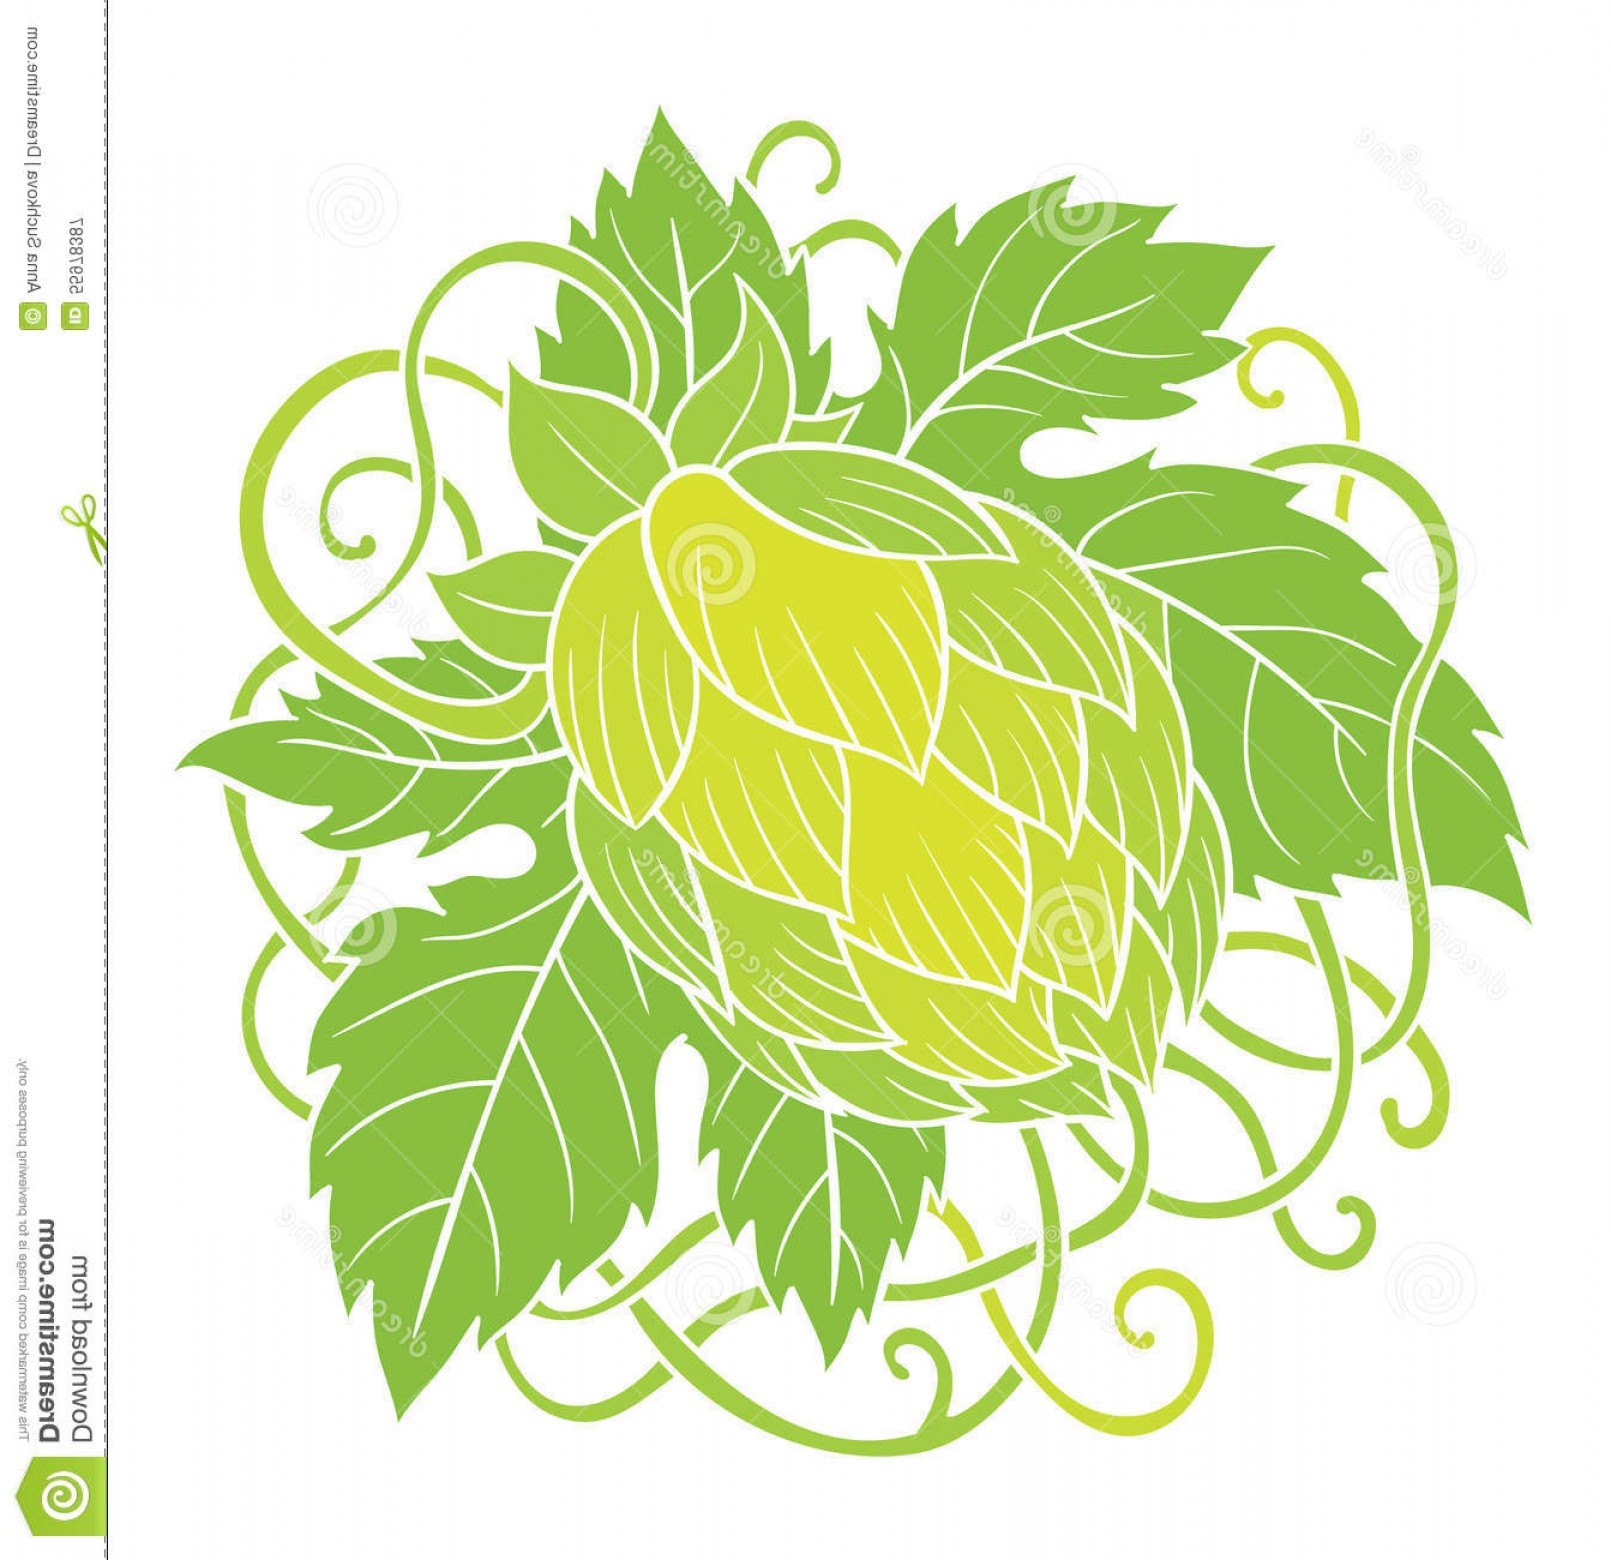 Beer Hops Vector: Stock Illustration Hops Vector Visual Graphic Icons Design Logos Ideal Beer Stout Ale Lager Bitter Labels Packaging Image